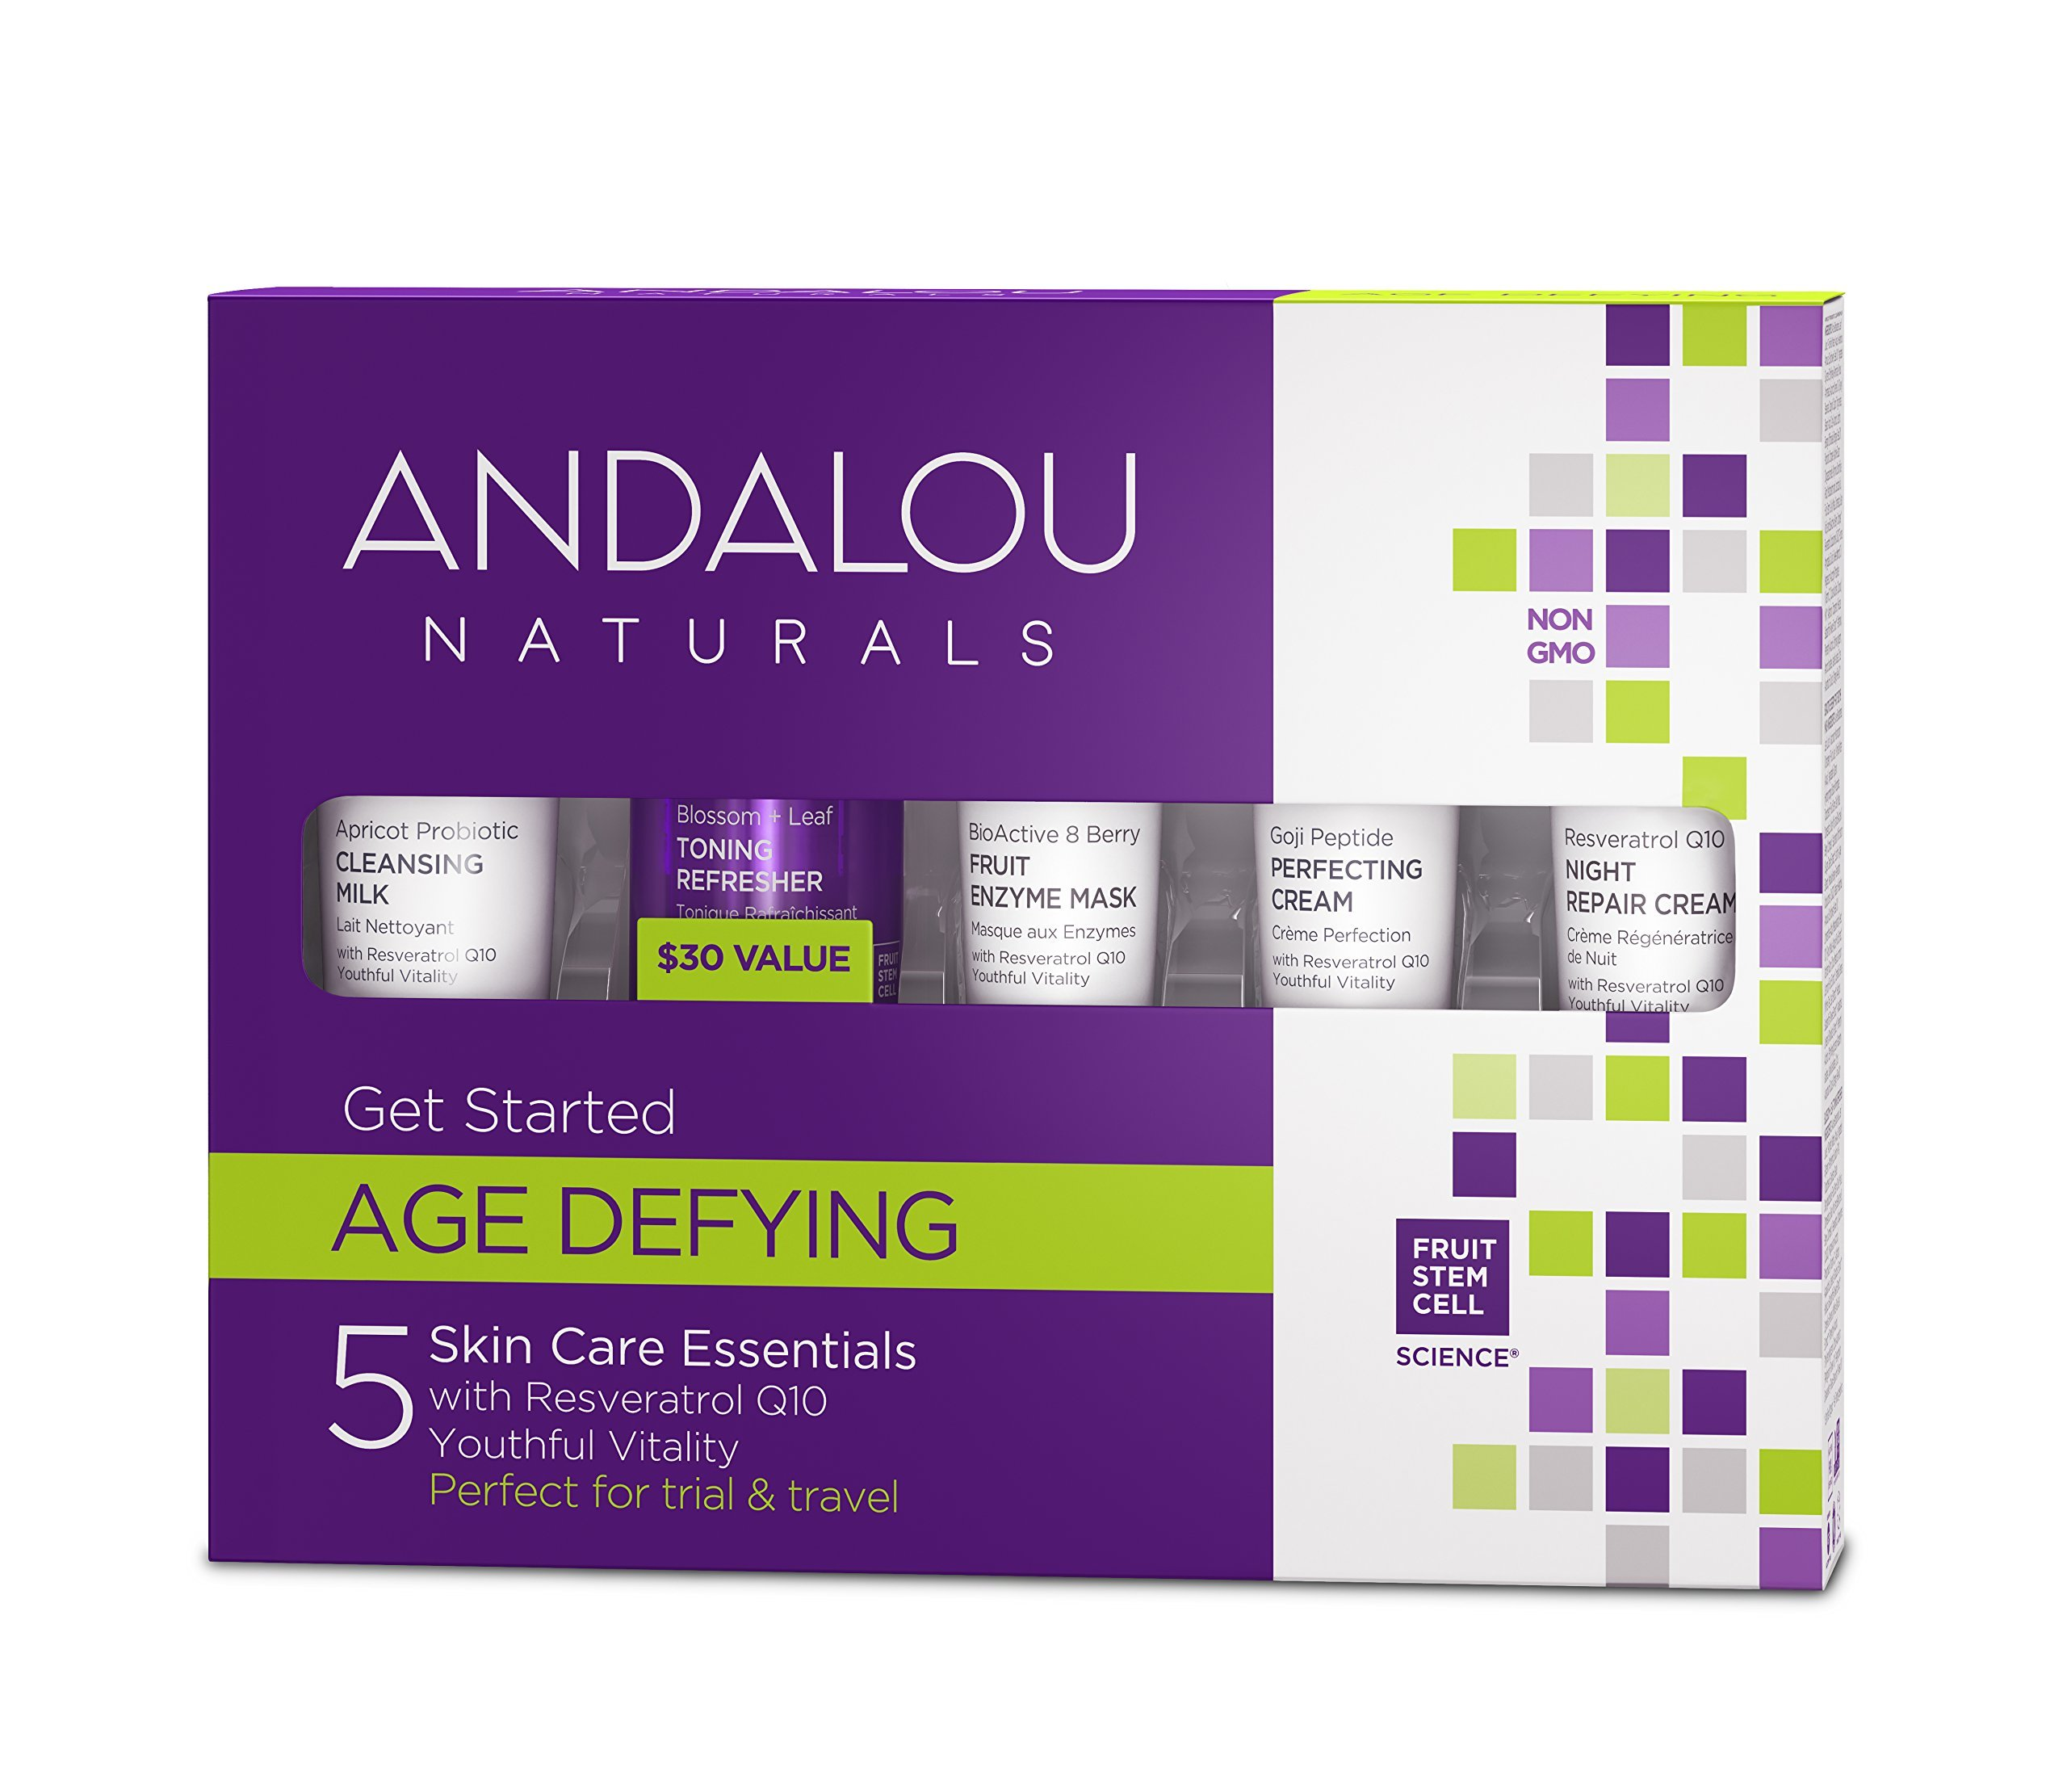 Andalou Naturals Age Defying Get Started Kit, 5 Piece Set, Minimize Fine Lines & Wrinkles with Cleanser, Toner, Mask, Day Cream, & Night Cream